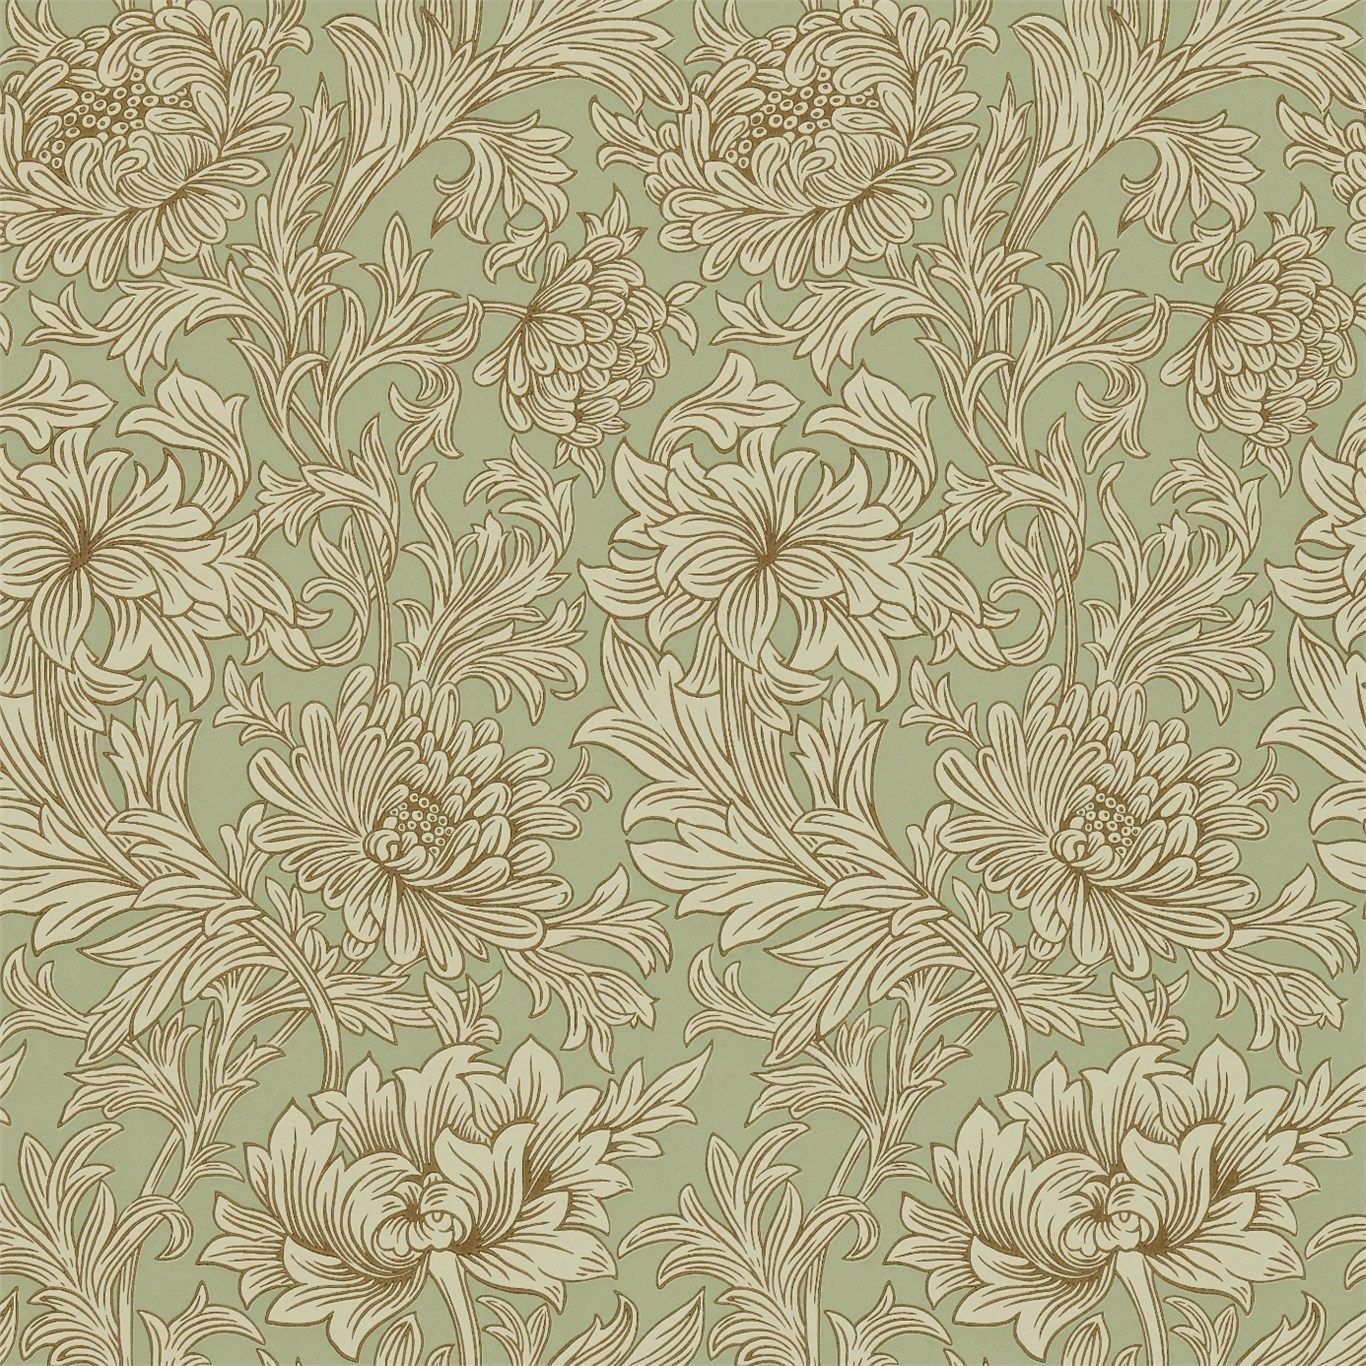 Morris & Co Chrysanthemum Toile Wallpaper William